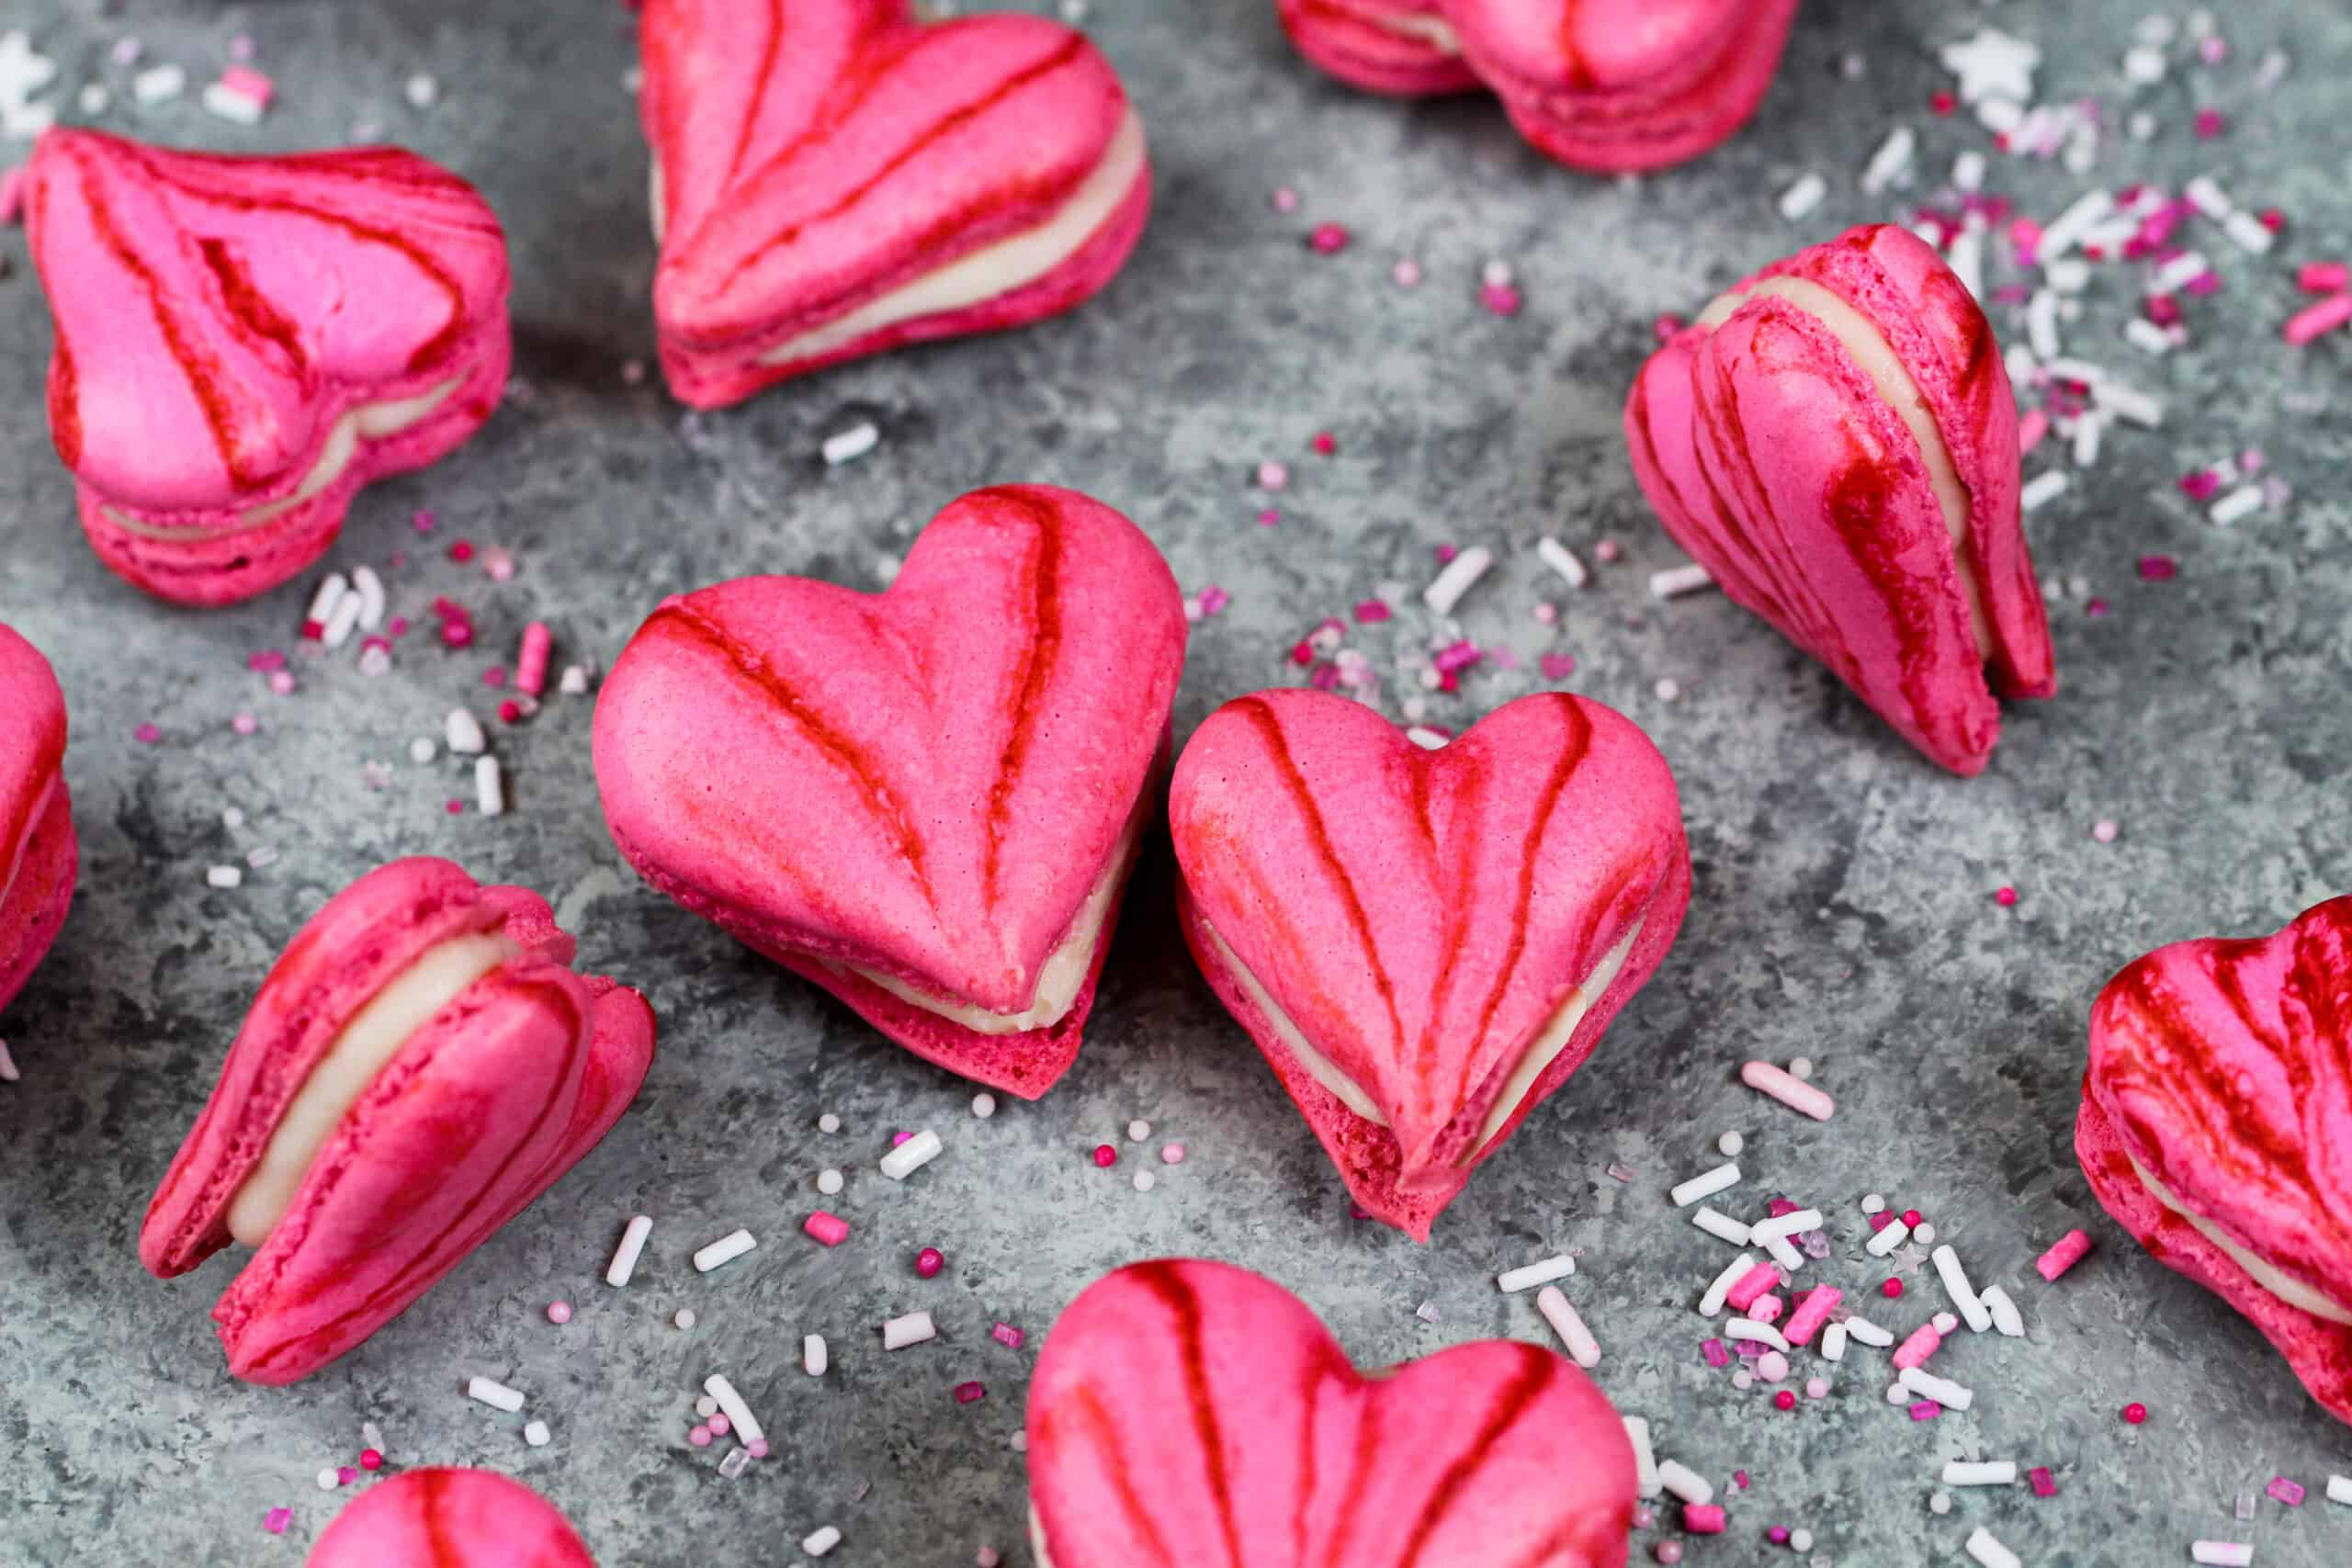 image of pink heart shaped macarons filled with buttercream